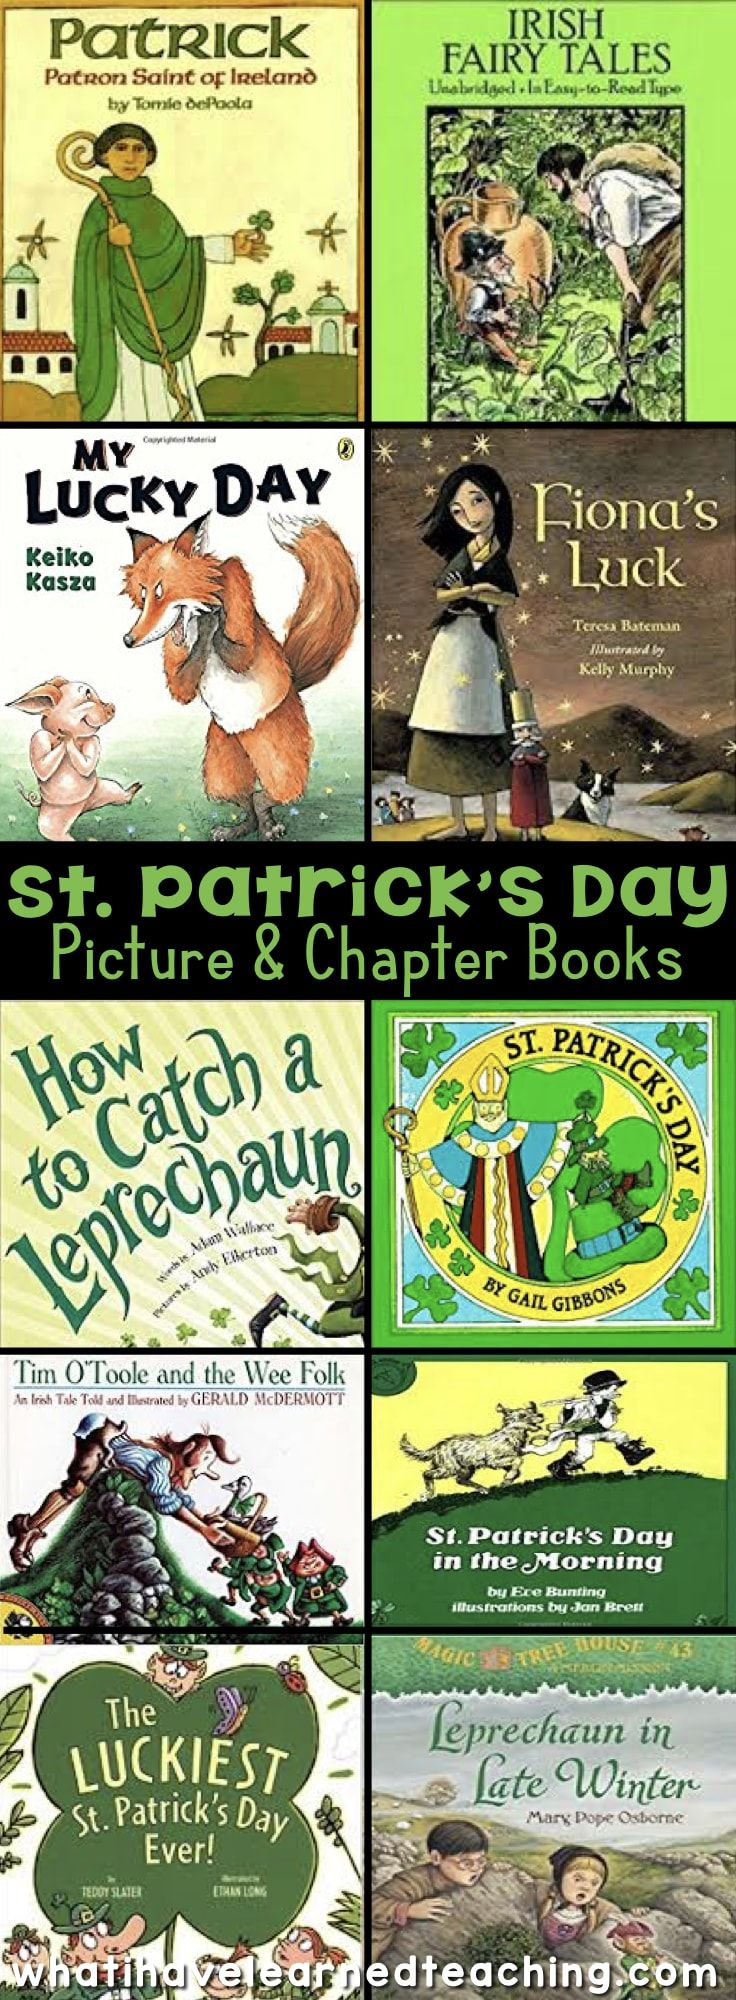 Books are an engaging way to enhance lessons. Here is an excellent St. Patrick's Day Booklist. These St. Patrick's Day Books make a fun read aloud for elementary grades!